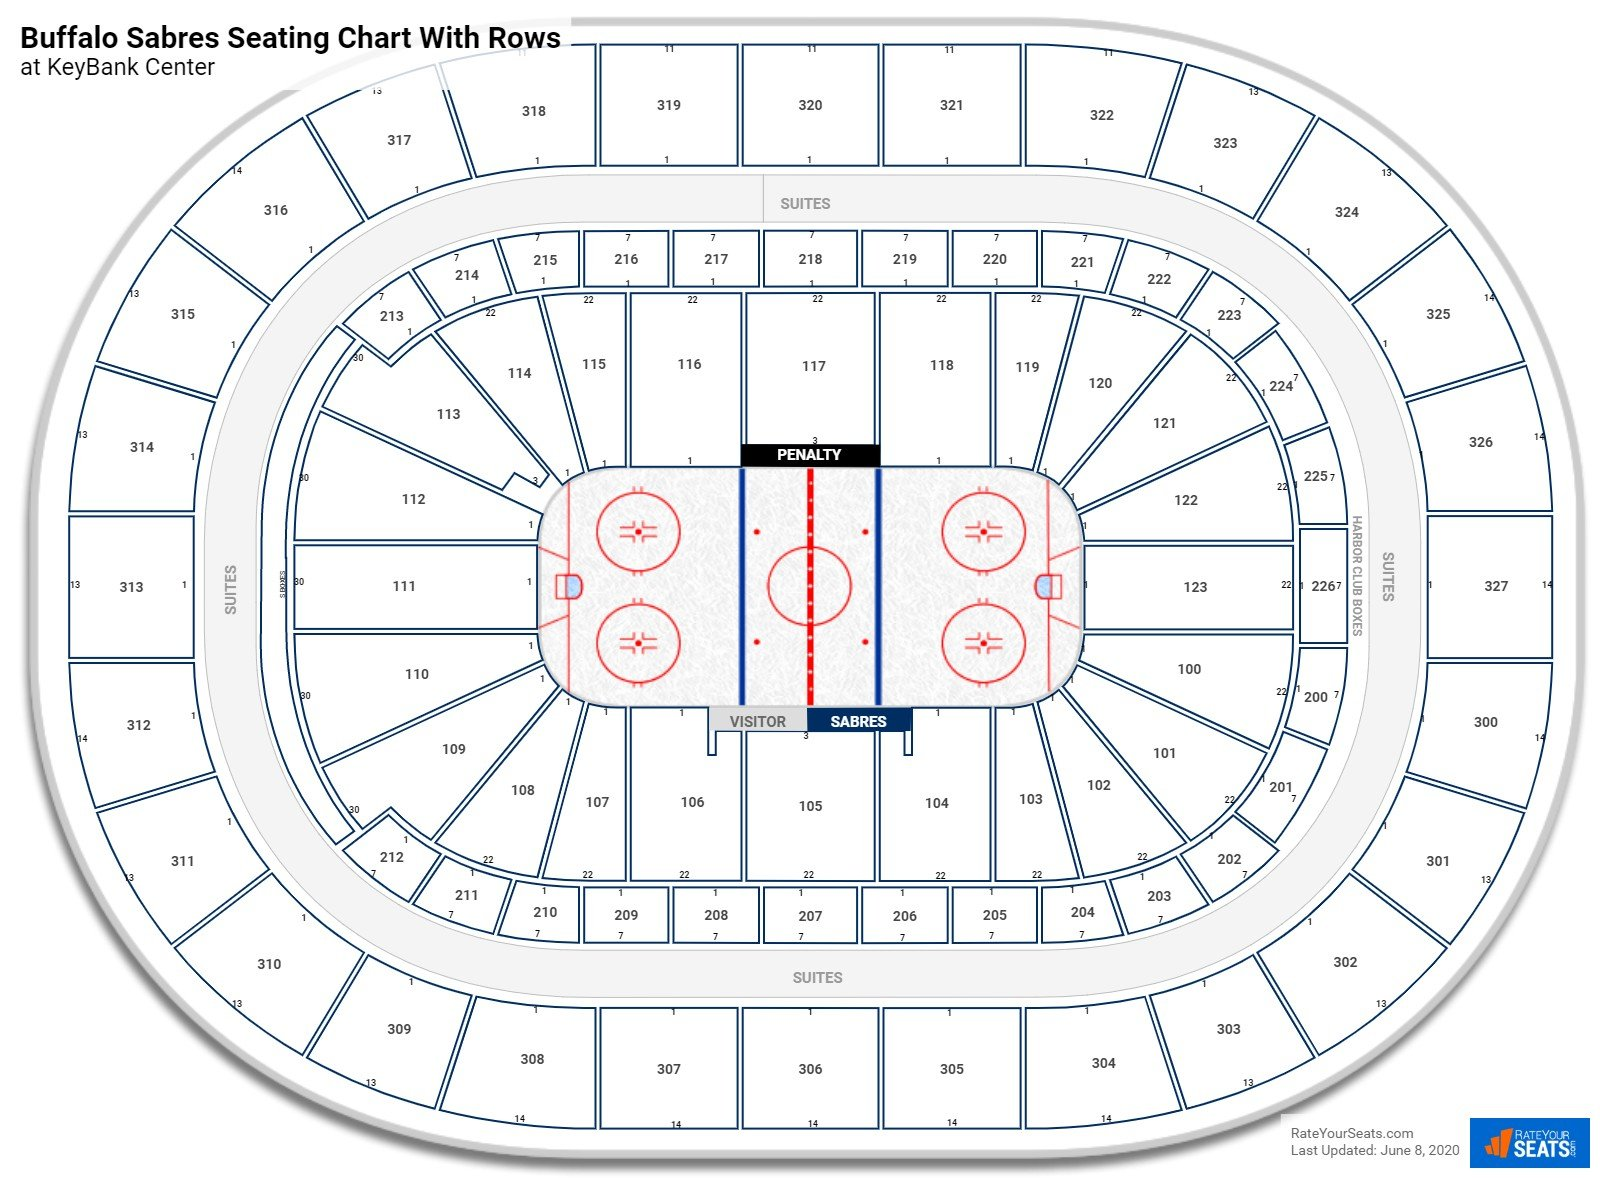 KeyBank Center seating chart with rows hockey